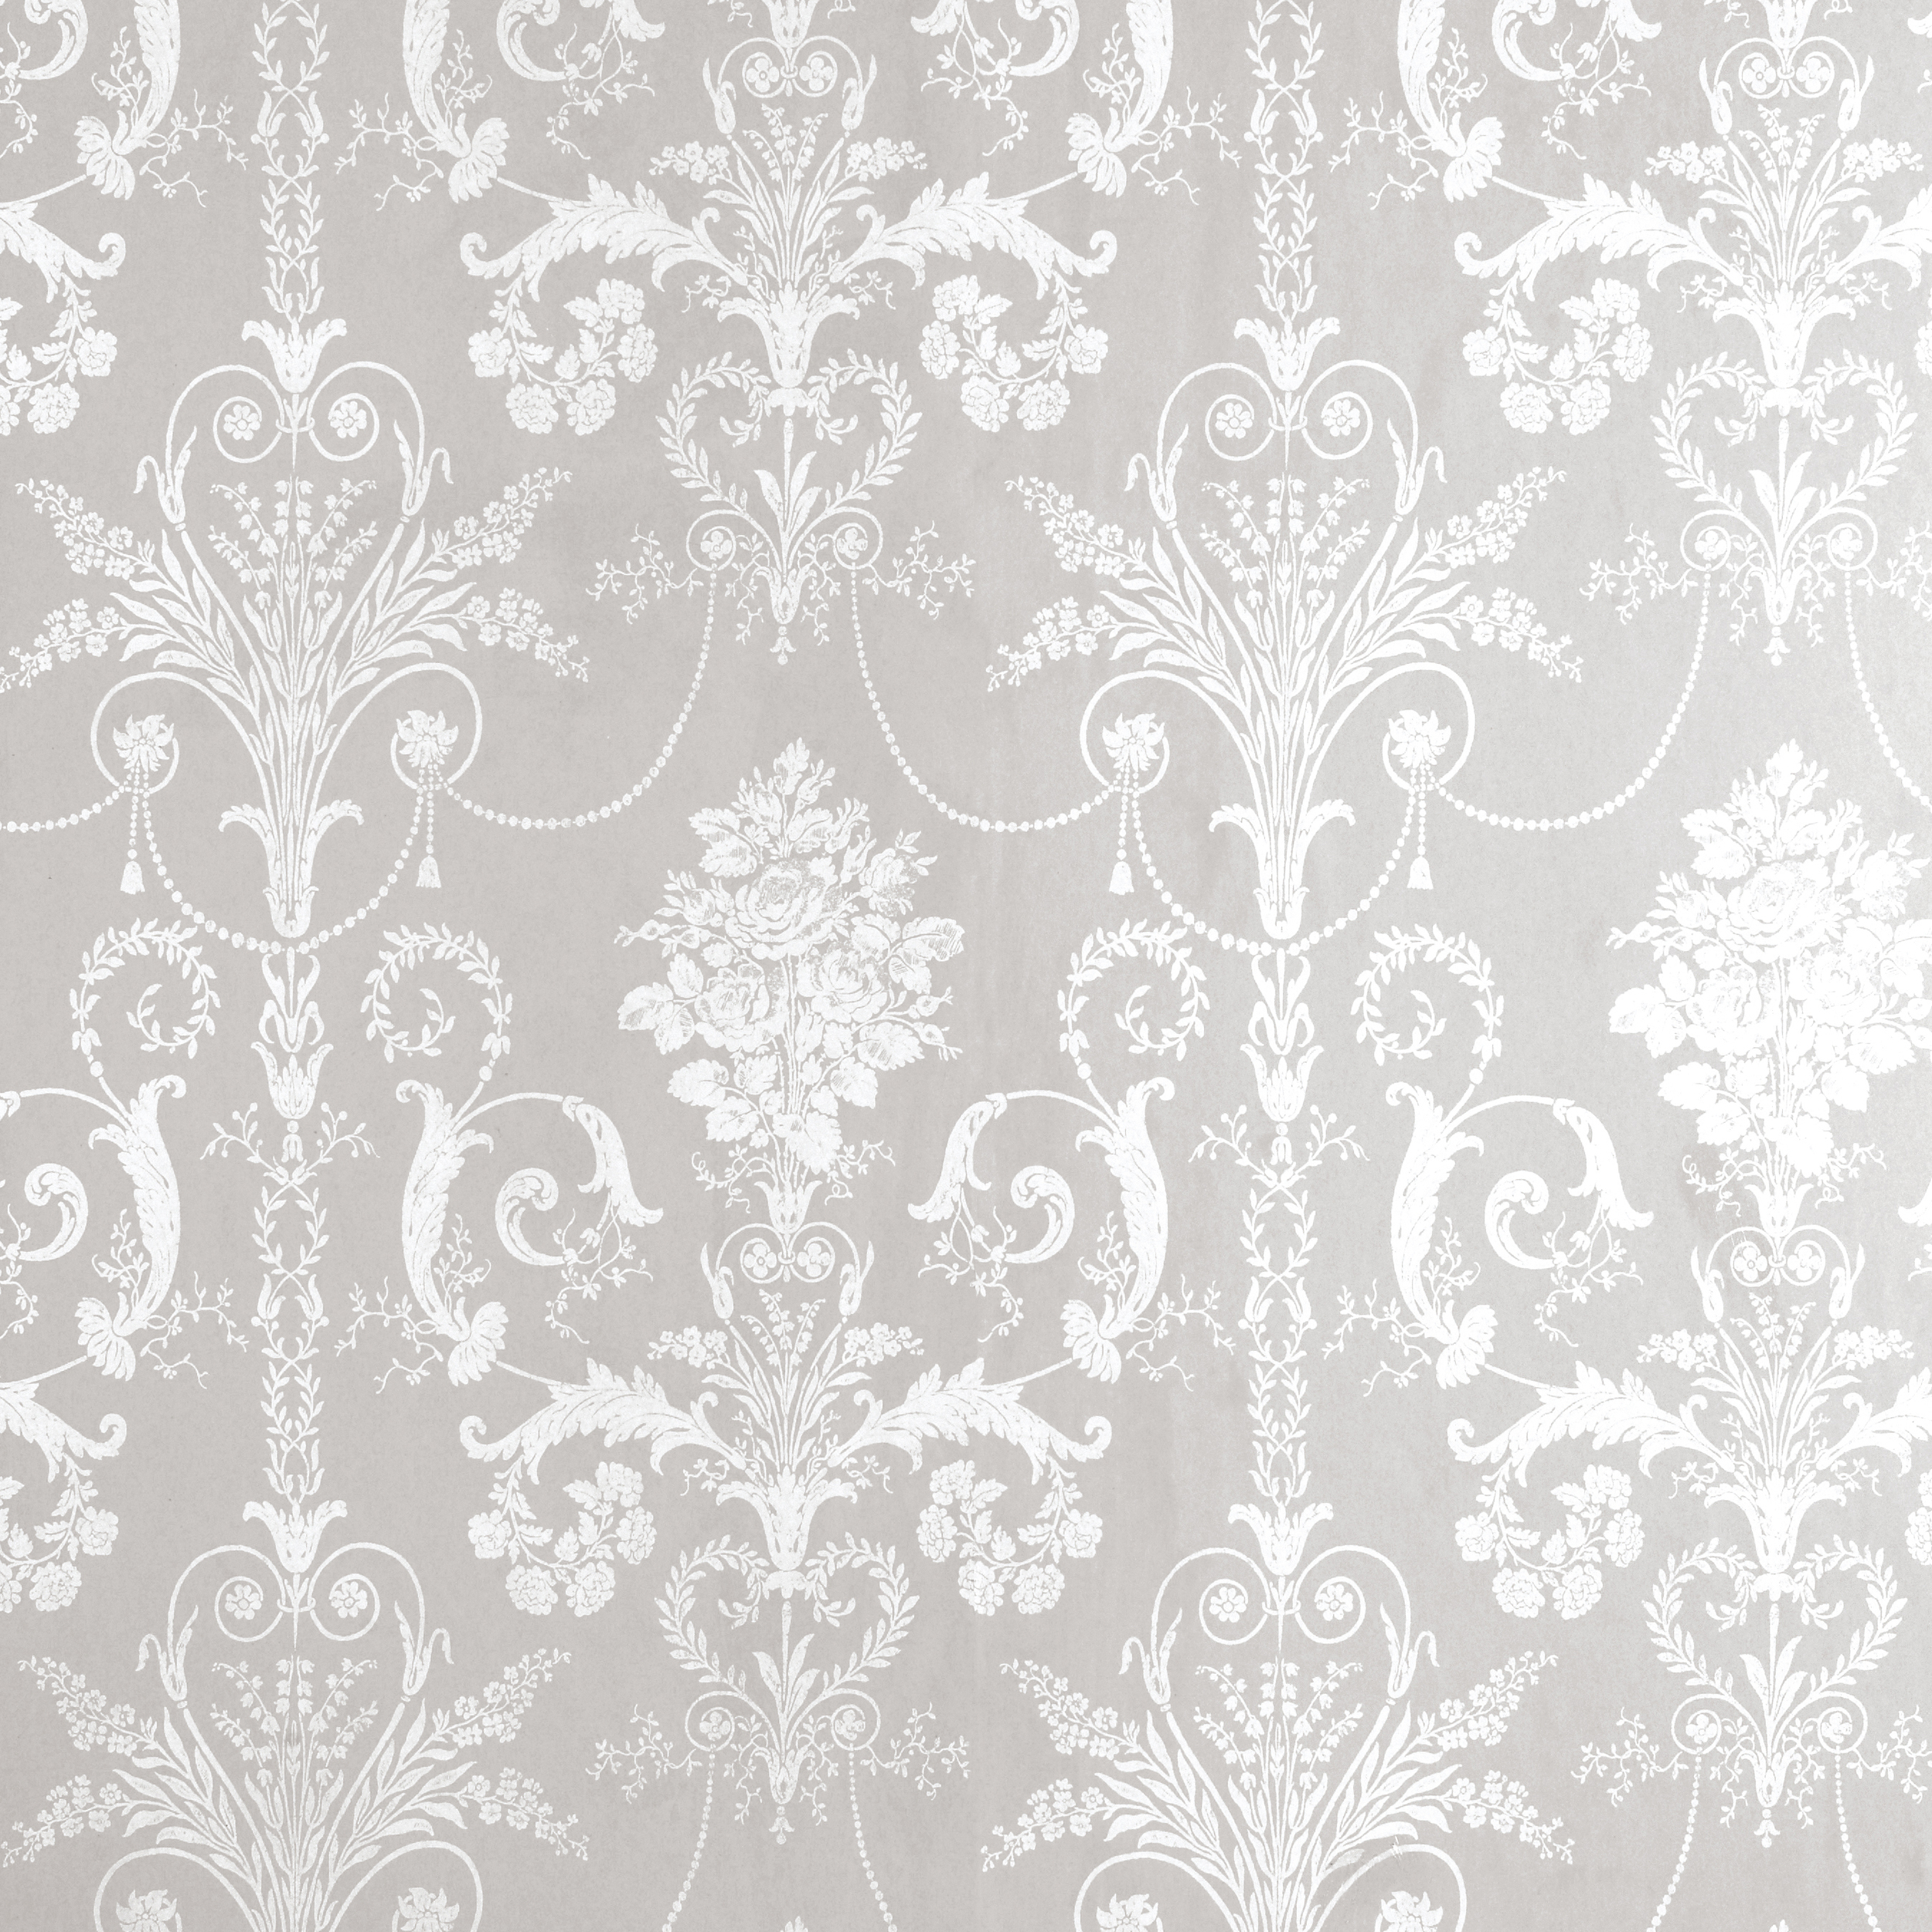 Home Decorating Wallpaper Josette WhiteDove Grey Damask Wallpaper 2500x2500